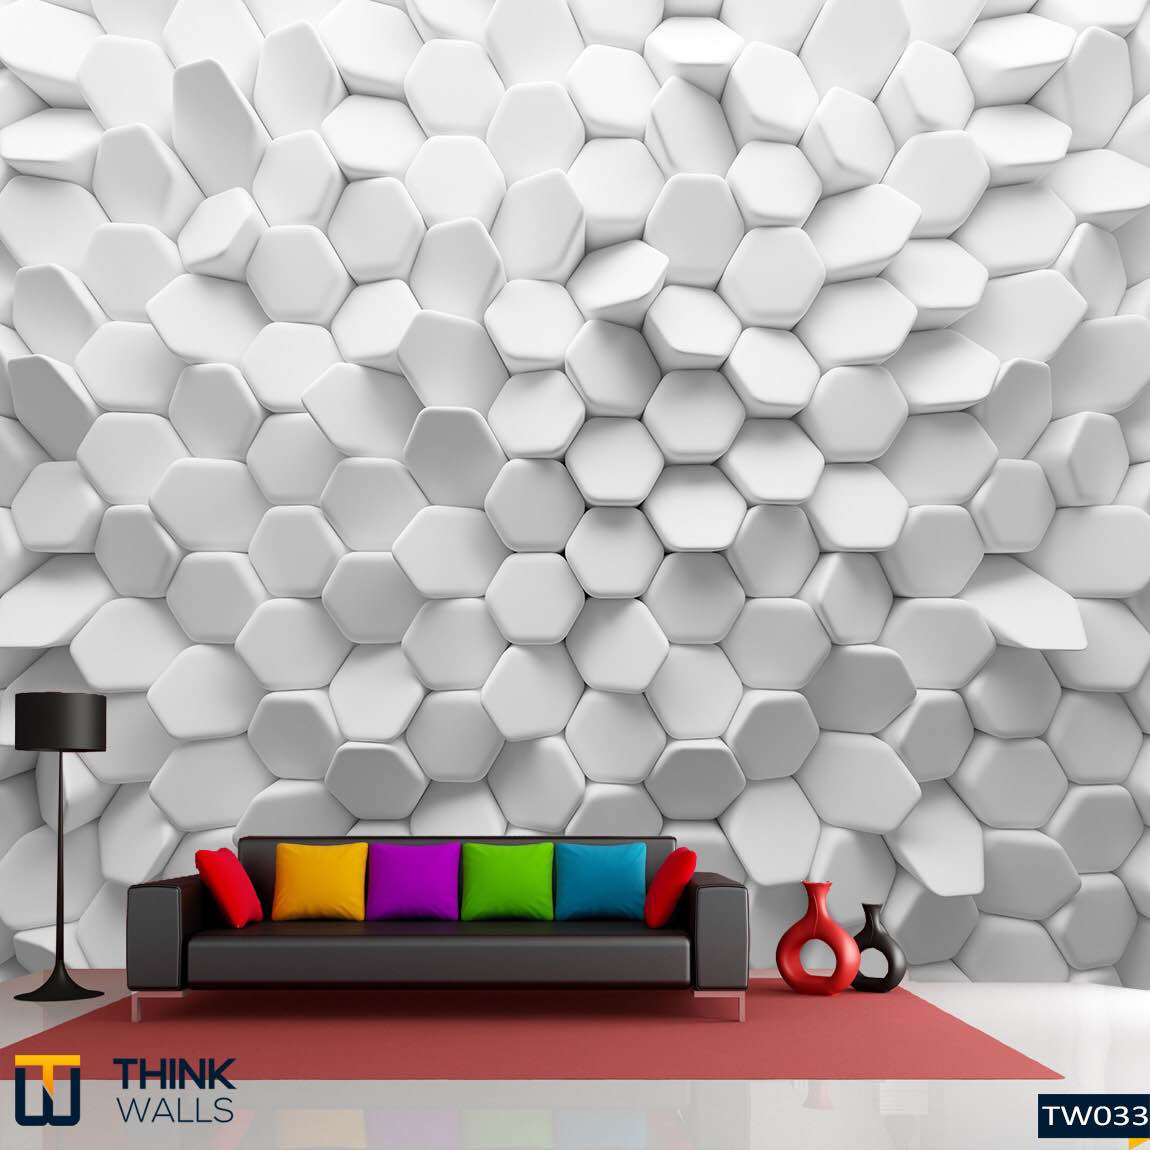 wallpapers THINK WALLS Call04039594520 in Hyderabad India